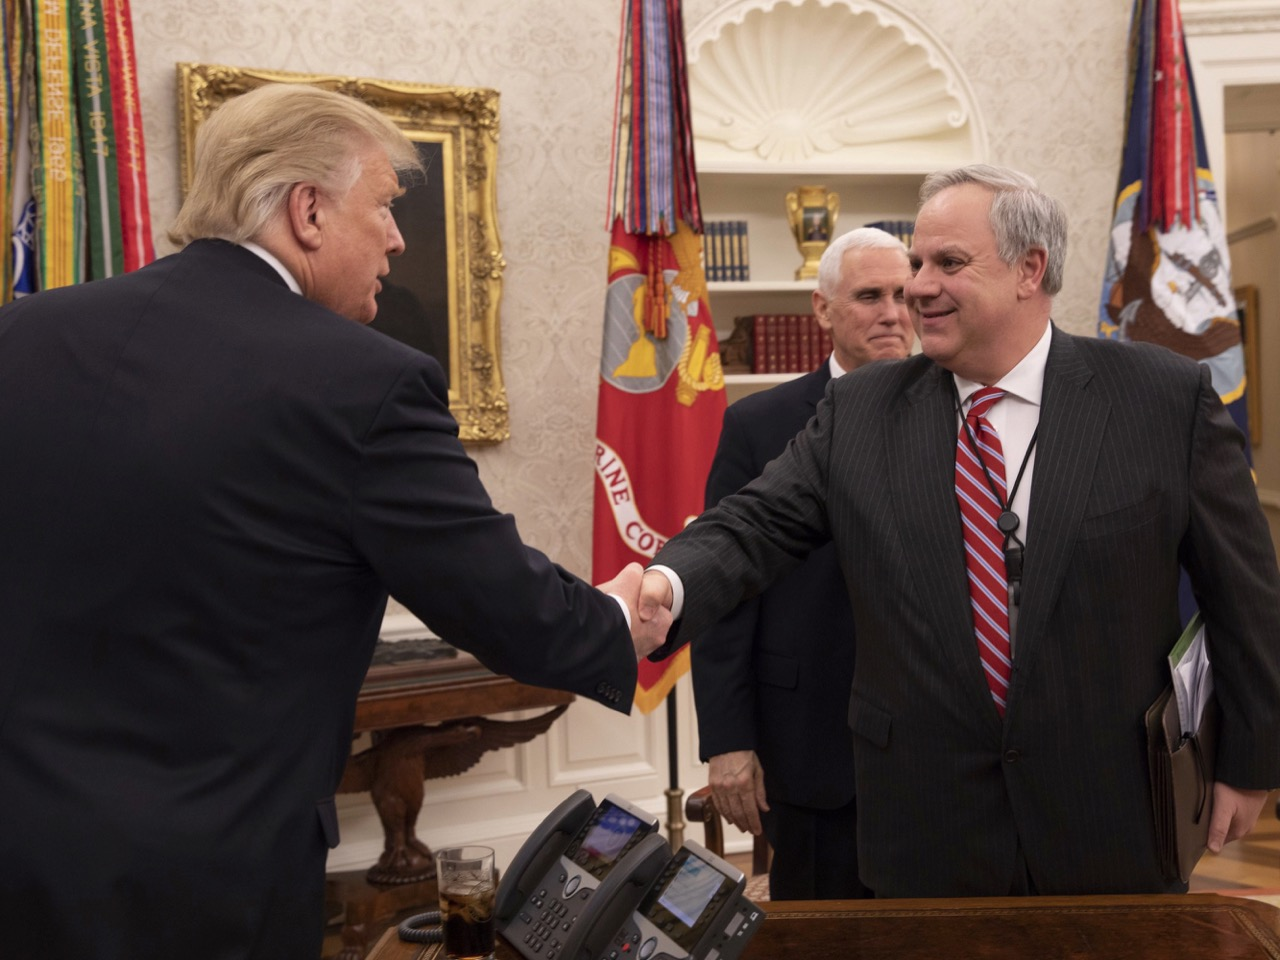 AUDIO: Confirmation hearing for David Bernhardt as Secretary of the Interior